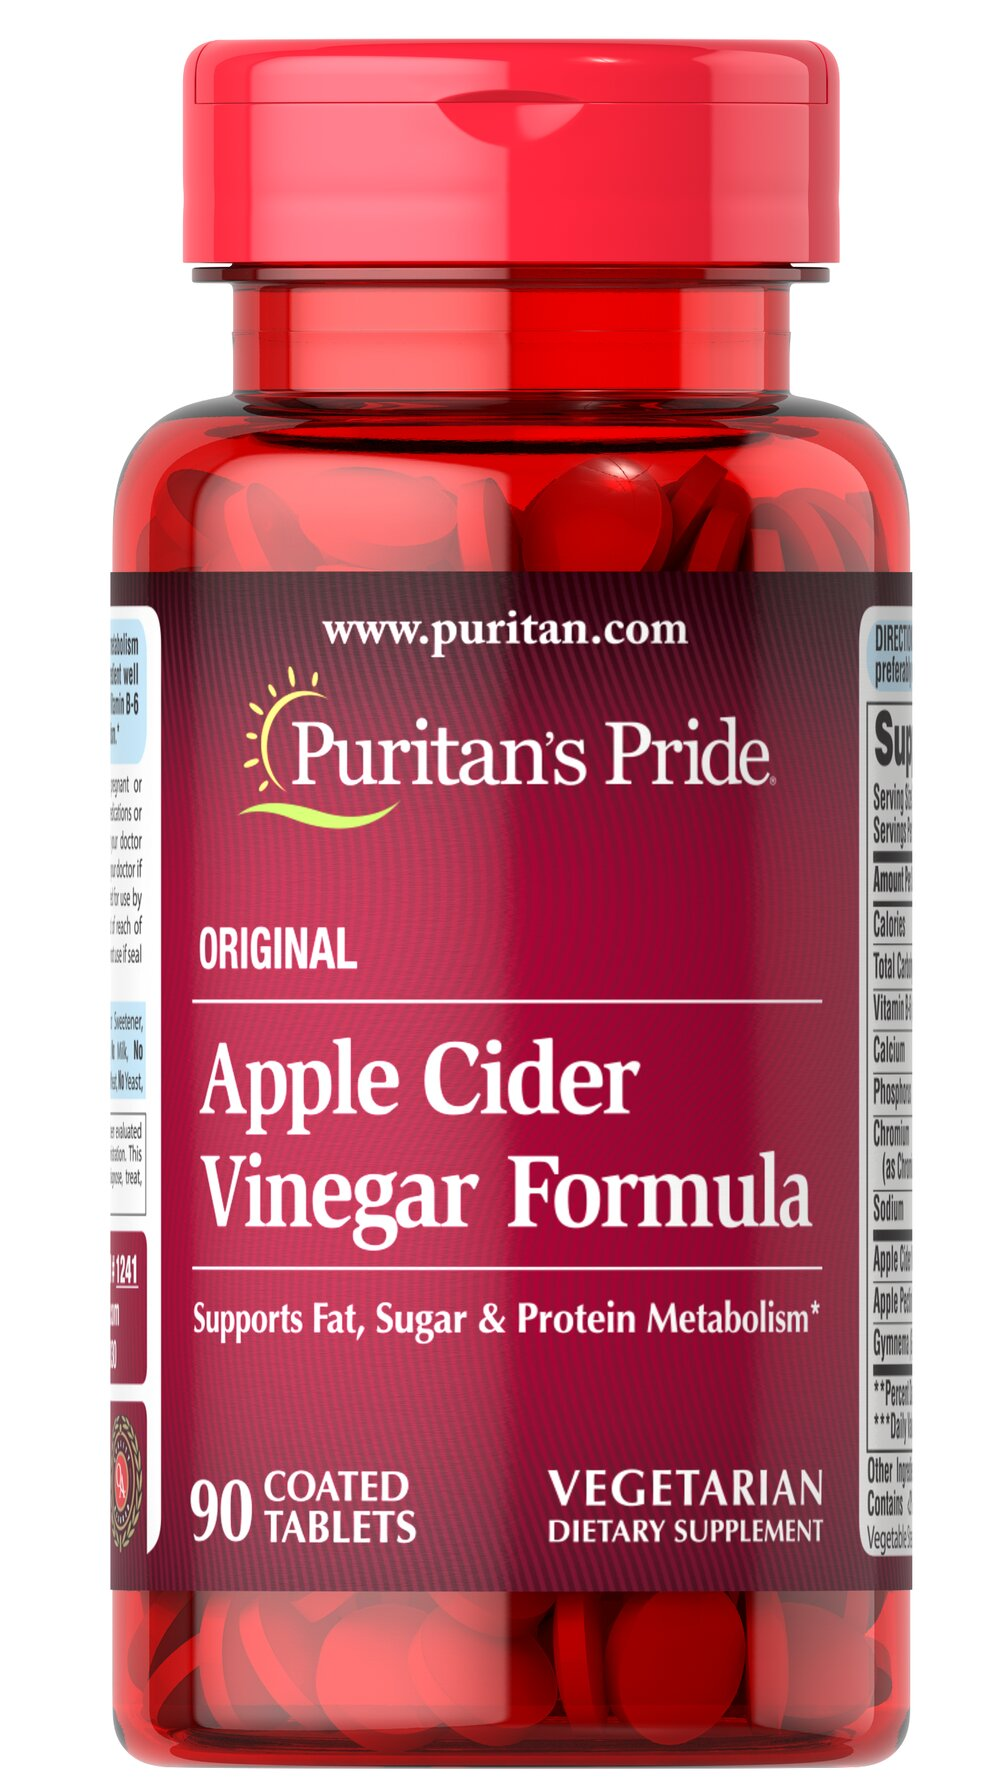 Apple Cider Vinegar Formula Chances are your mother and grandmother used Apple Cider Vinegar for a variety of purposes. As a supplement, Apple Cider Vinegar tablets are popular with fitness enthusiasts and those following healthy eating plans.<p></p>Vinegar is produced when fermentation occurs. Vinegar is a source of acetic acid. Acetic acid forms when sugars in food are broken down by bacteria and yeast. Acetic acid is what gives foods like sourdough bread and pickles their tangy ki